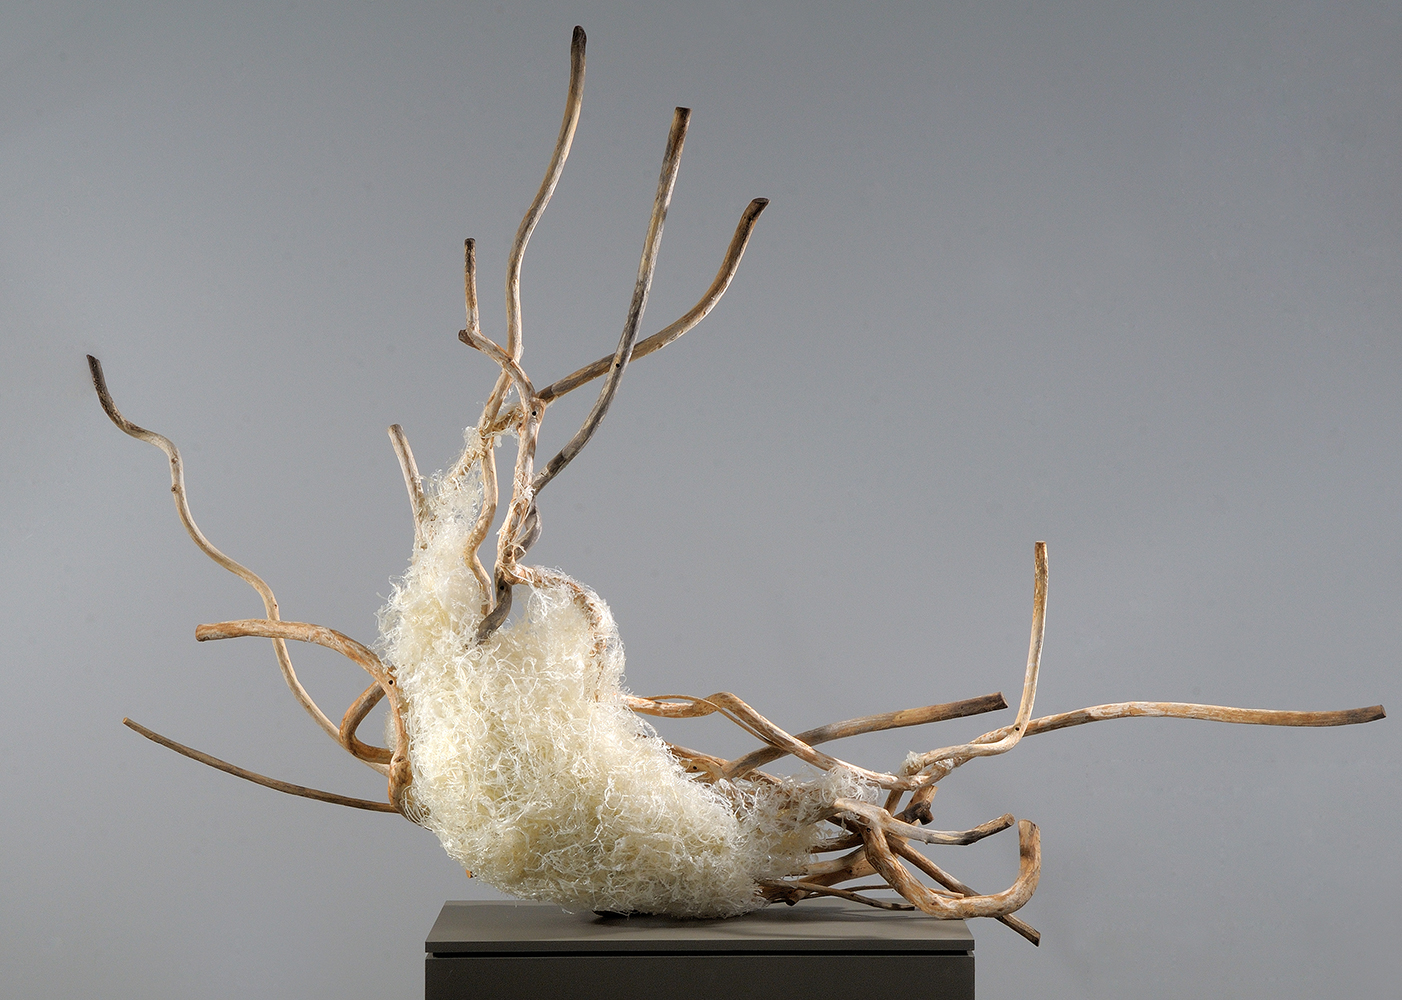 Glue and Wood natural art sculpture from Donna Forma